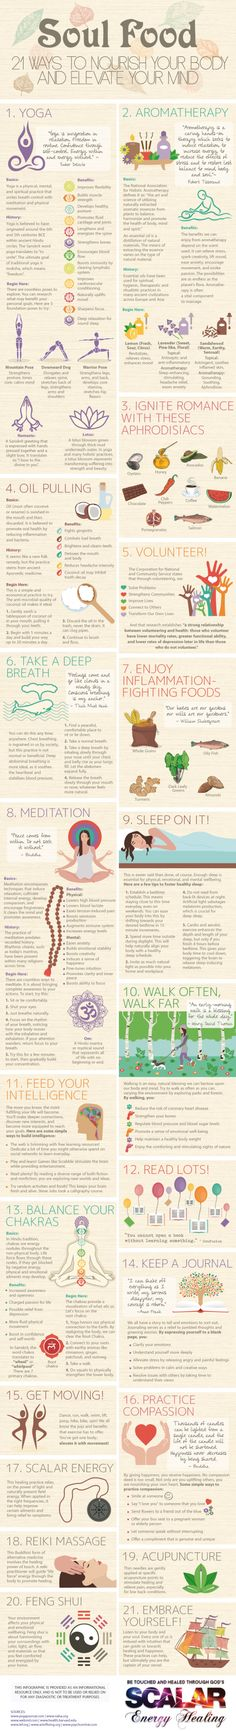 21 Ways To Nourish Your Body & Elevate Your Mind! The Tao of Dana